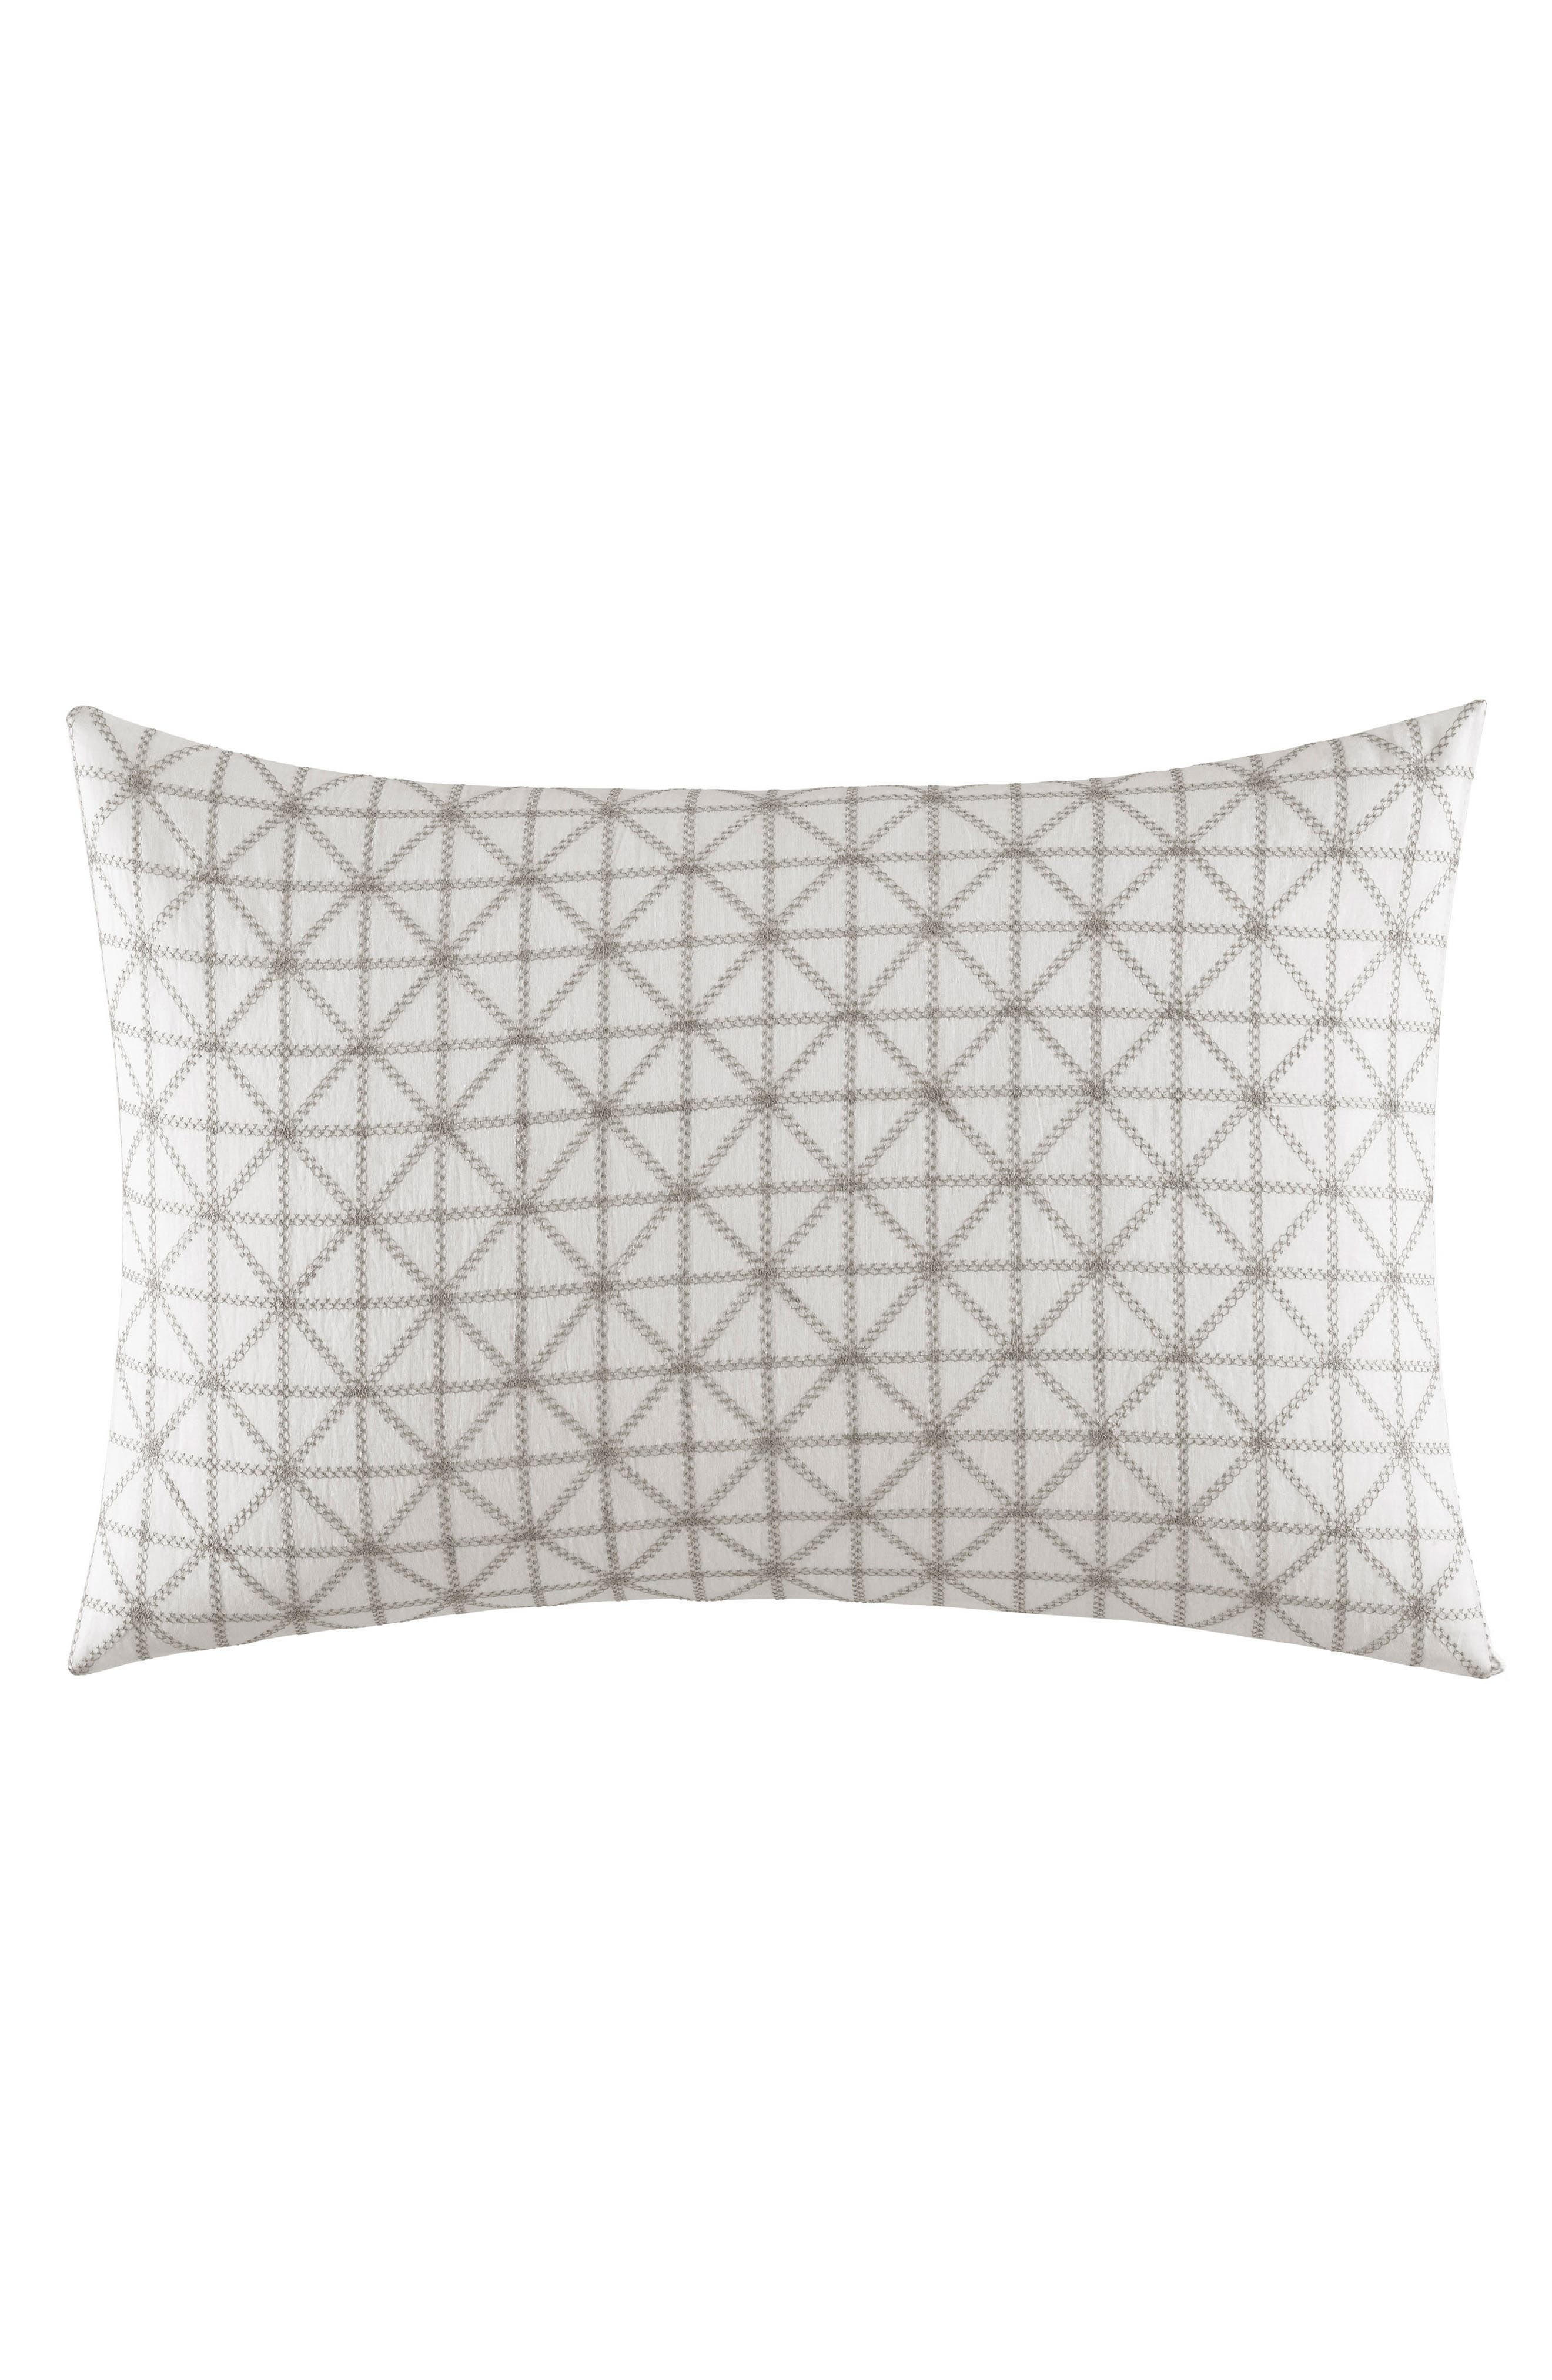 Mirrored Breakfast Accent Pillow,                         Main,                         color, Grey